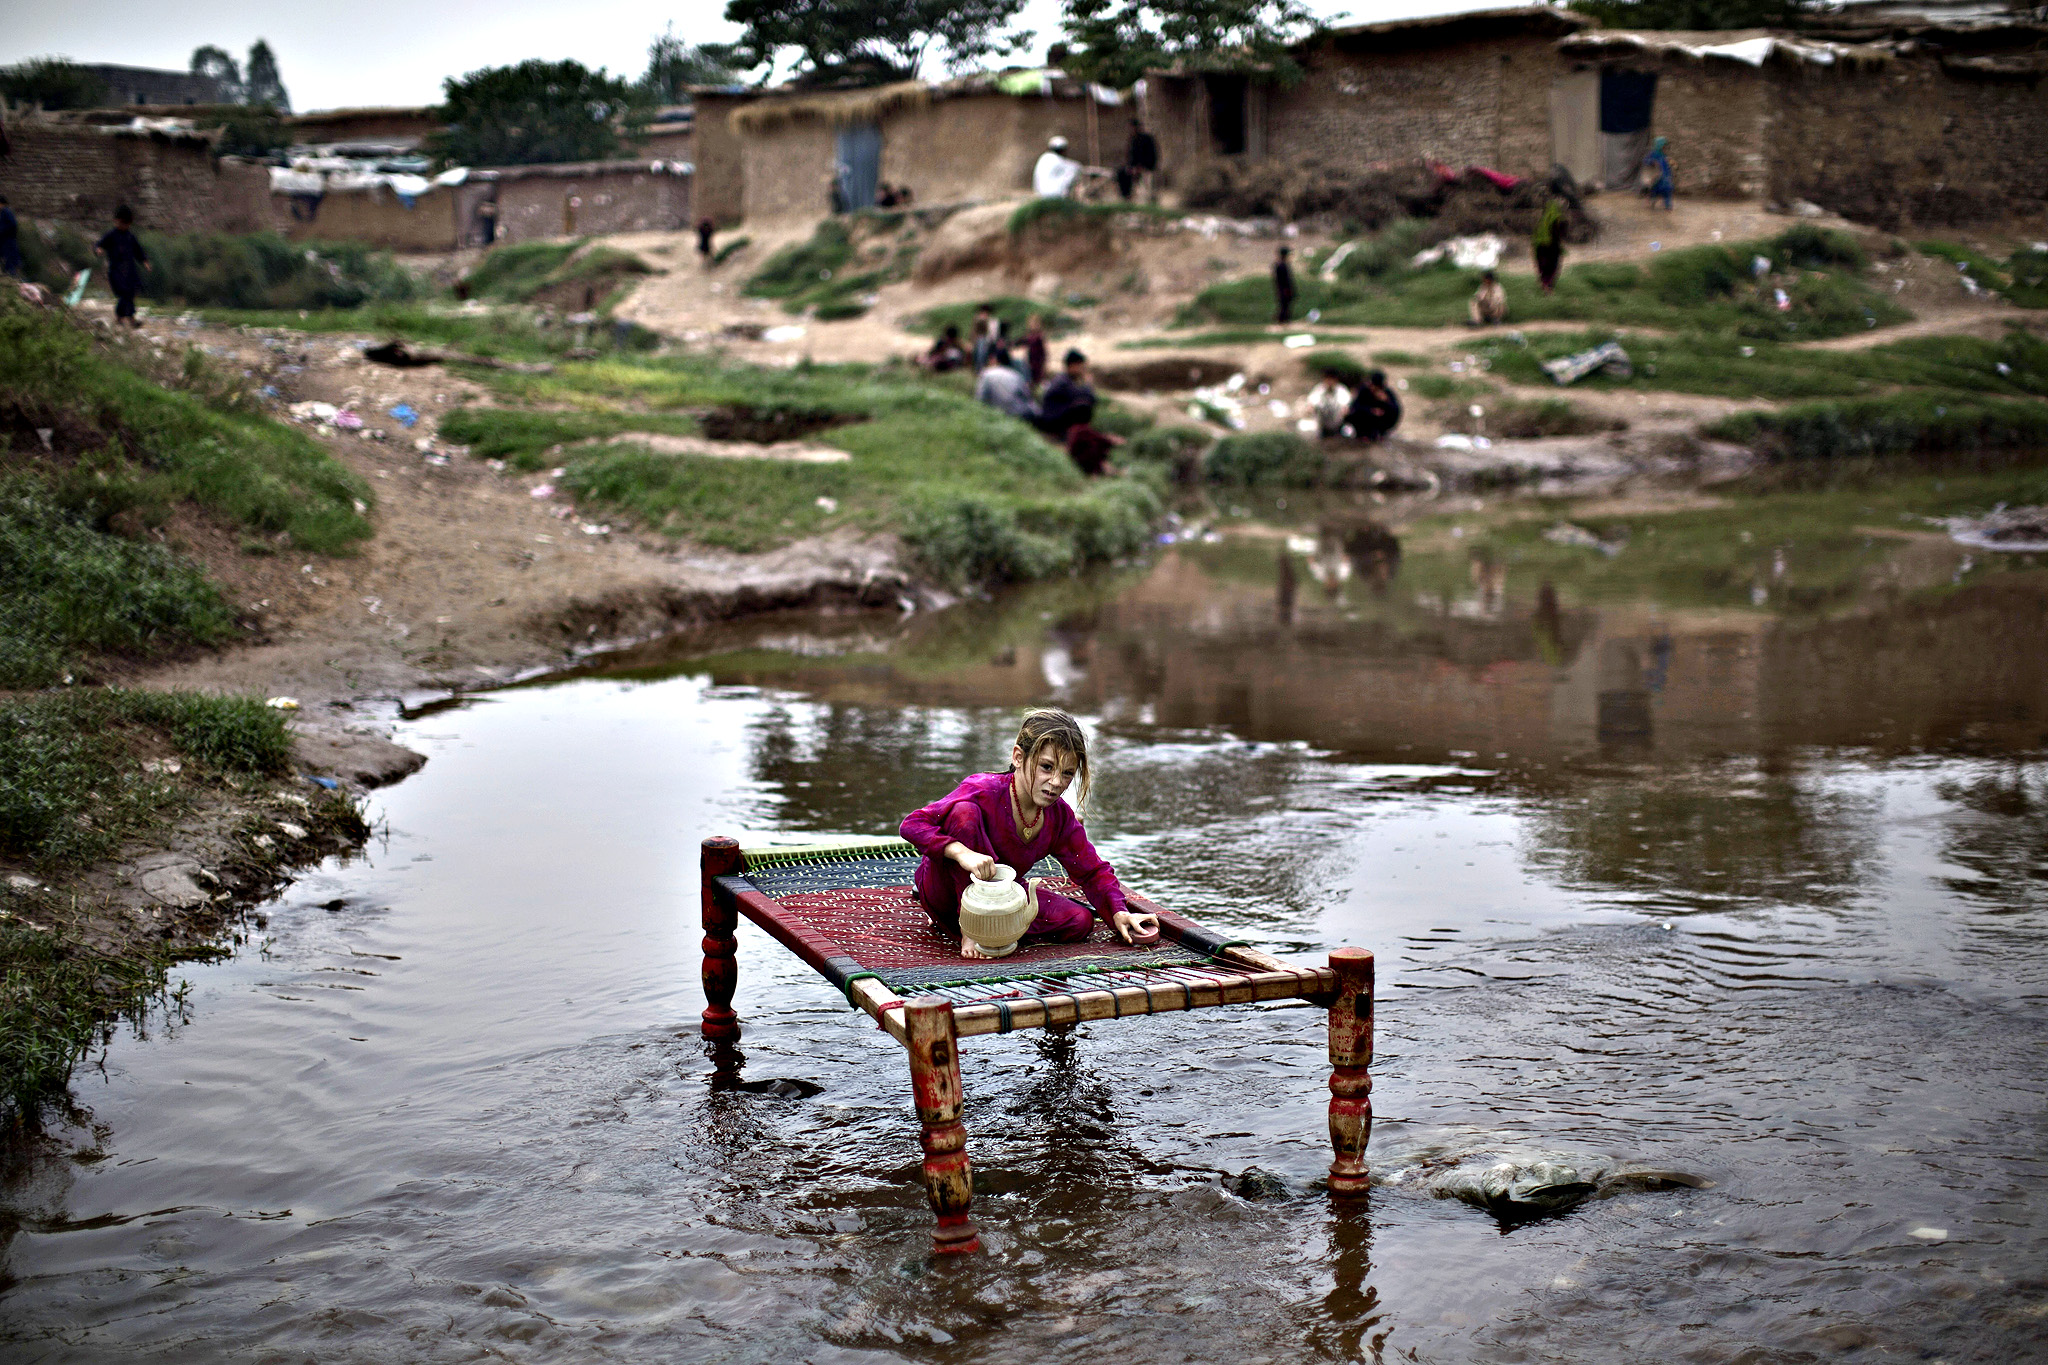 An Afghan refugee girl washes a bed in a polluted stream, in a poor neighborhood on the outskirts of Islamabad, Pakistan, Tuesday, Sept. 30, 2014.